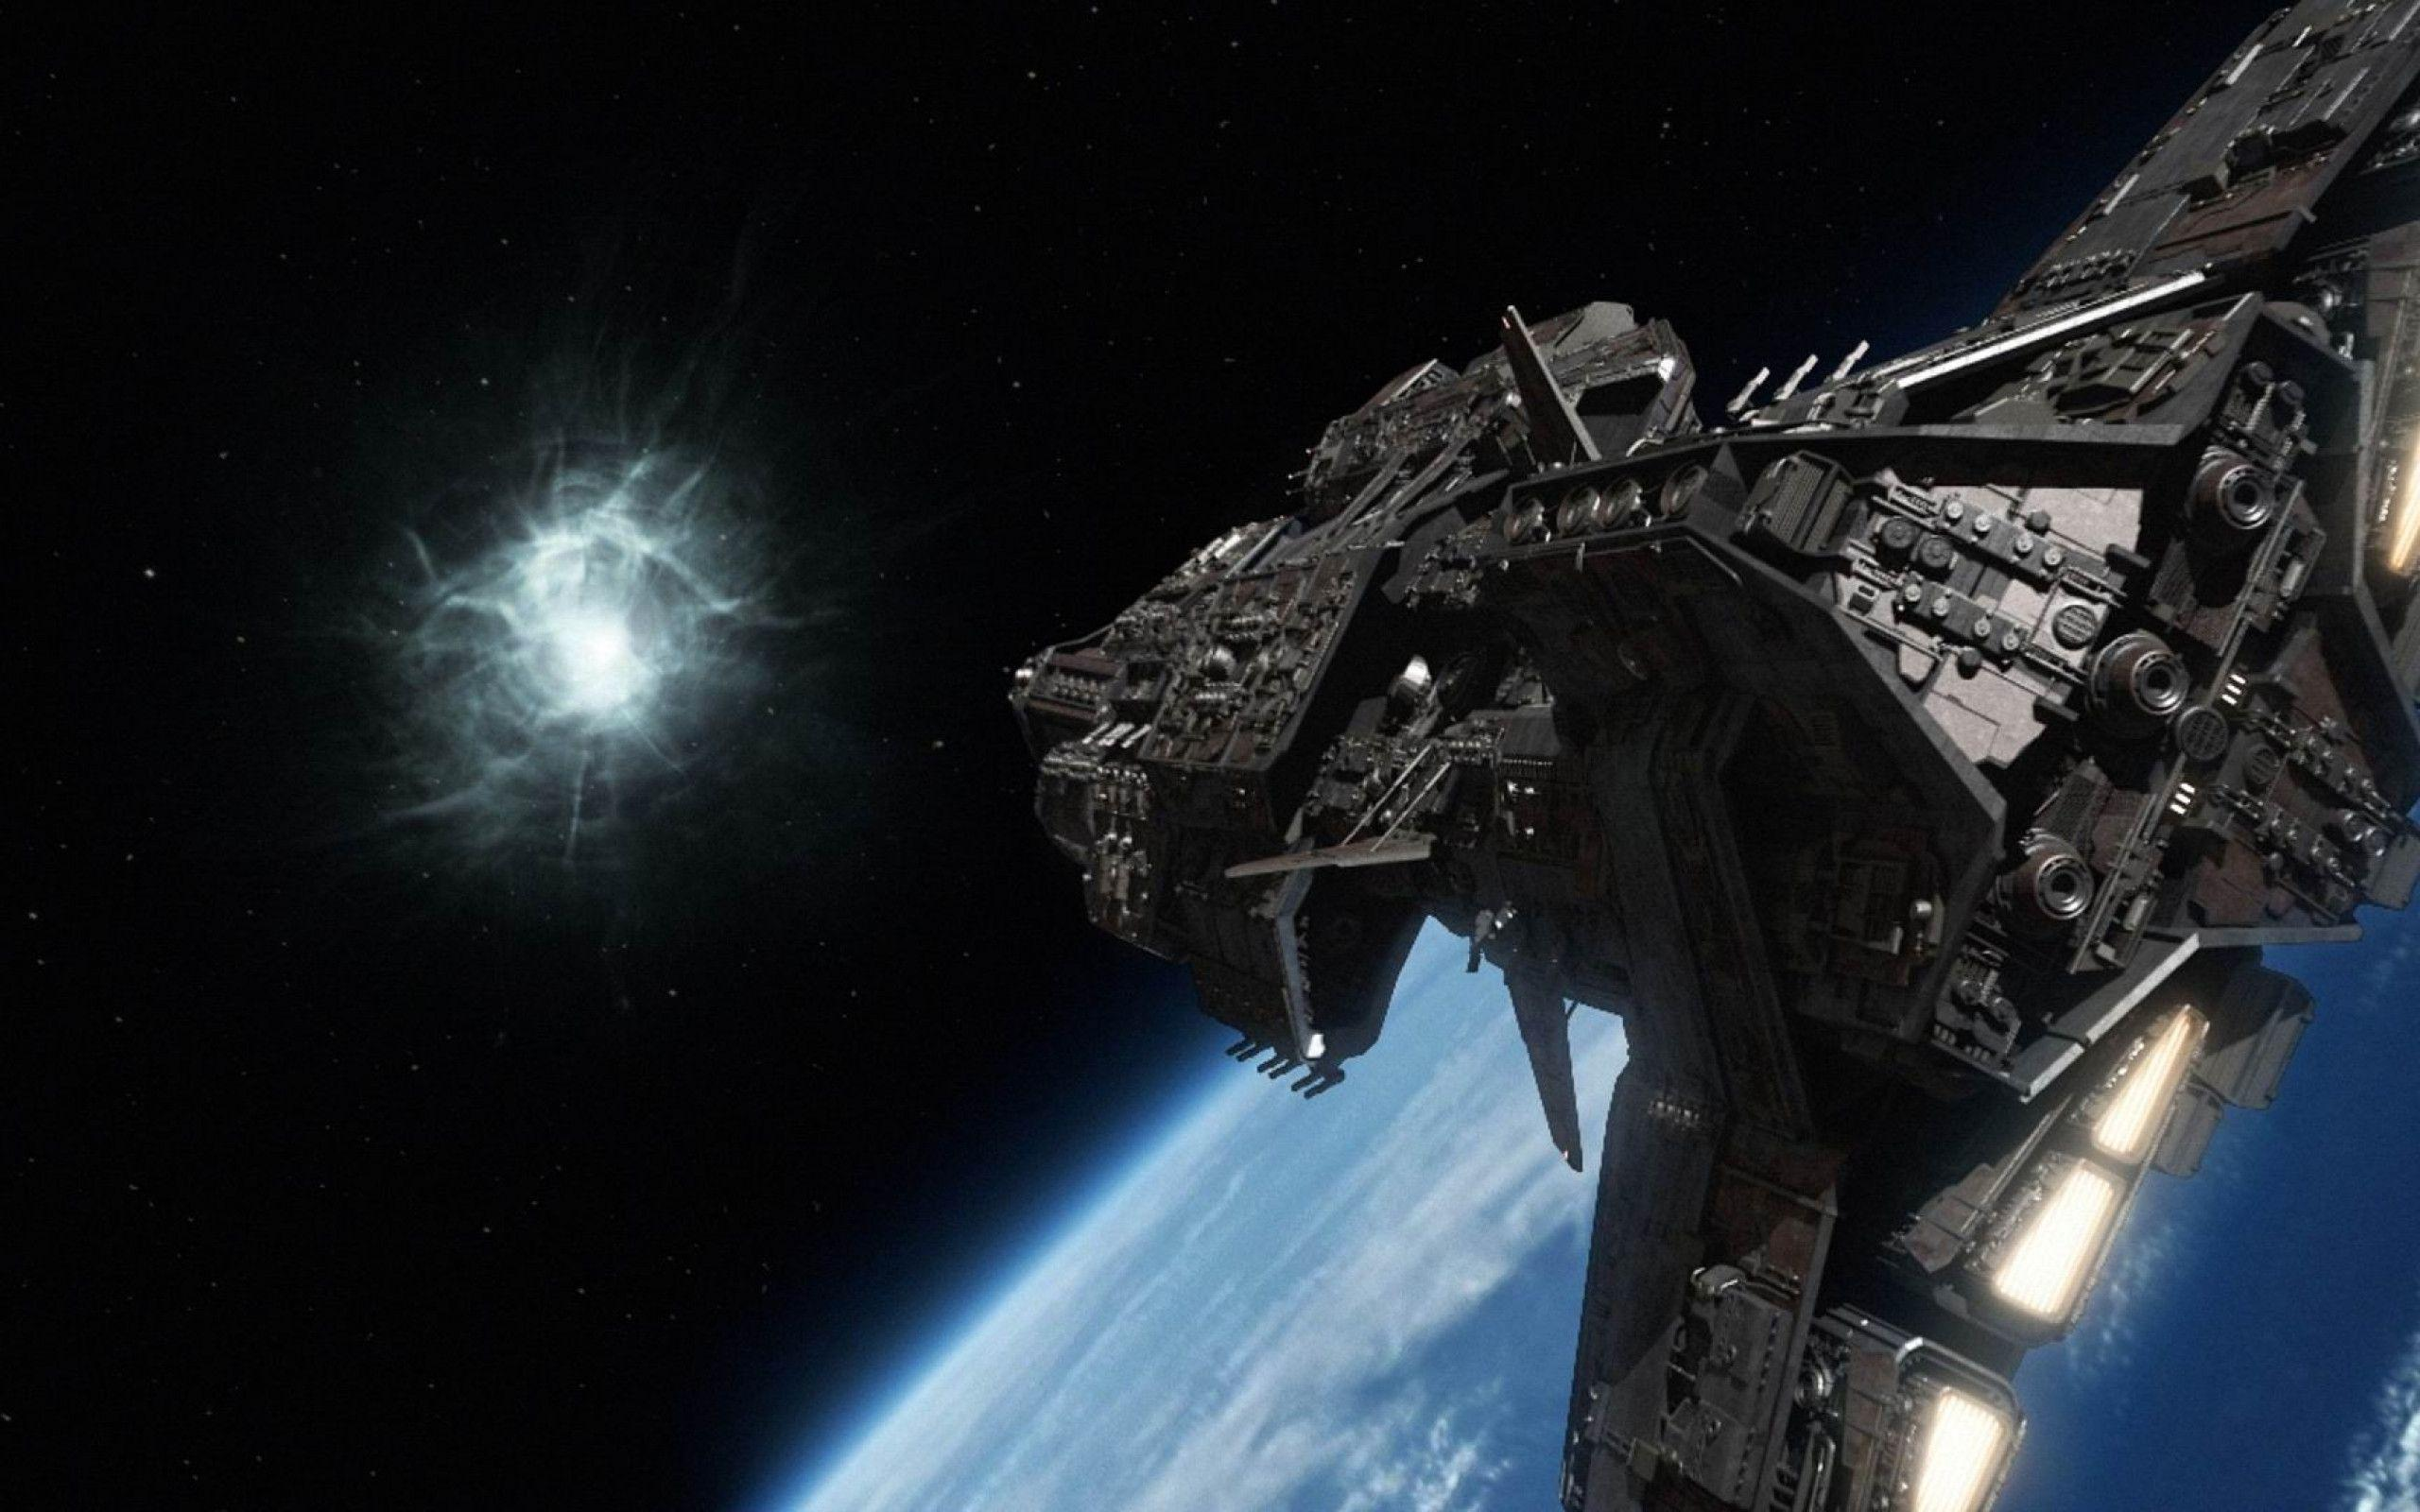 stargate wallpaper universe space - photo #12